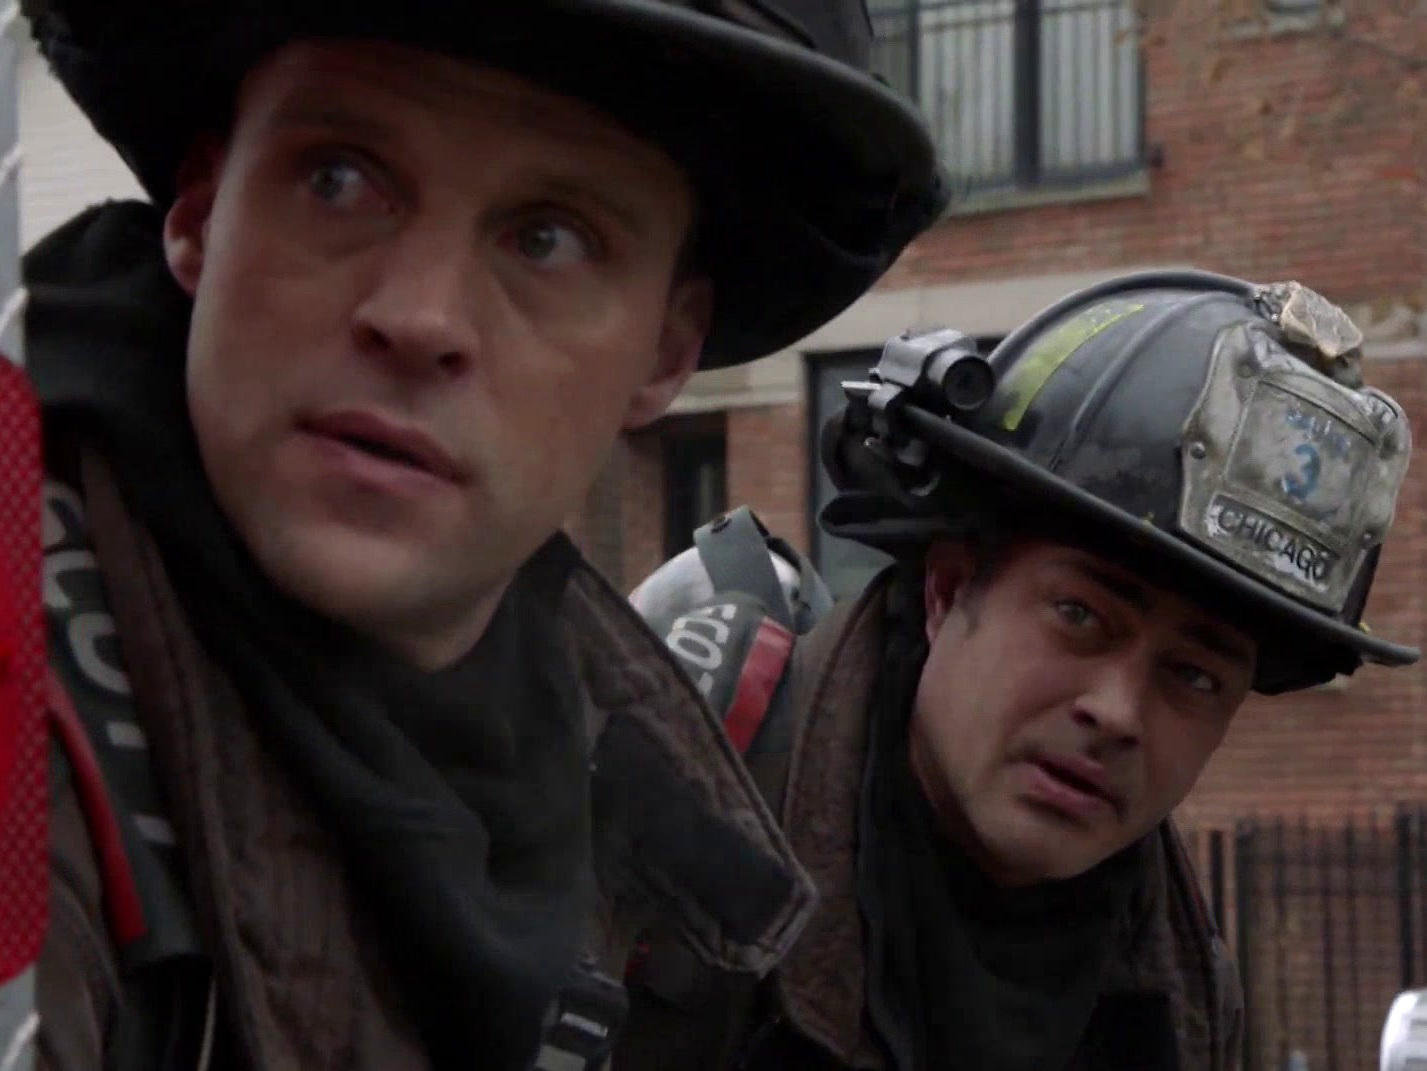 Chicago Fire: Fifty-One Reports To A Basement Blaze With Shots Fired